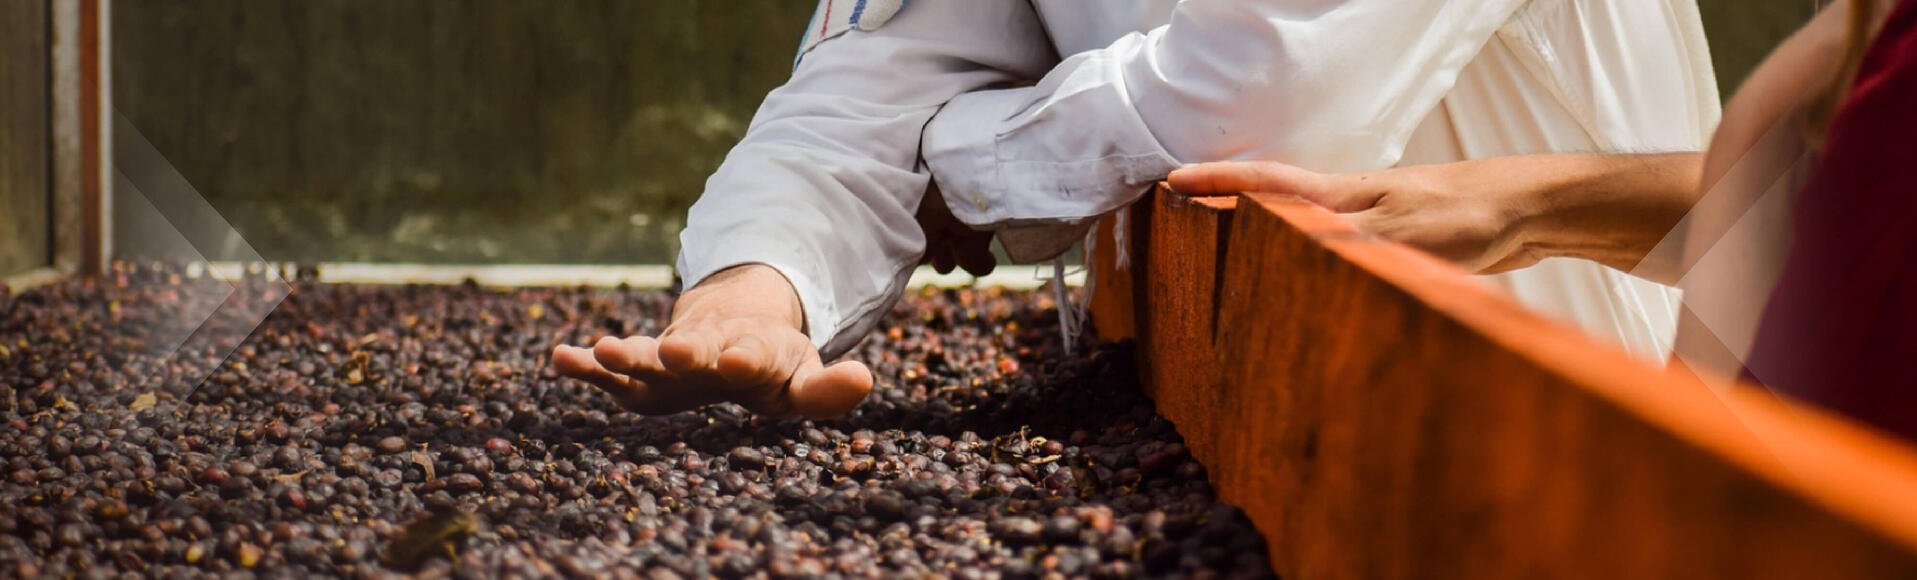 Coffee - sustainability for the love of country and coffee